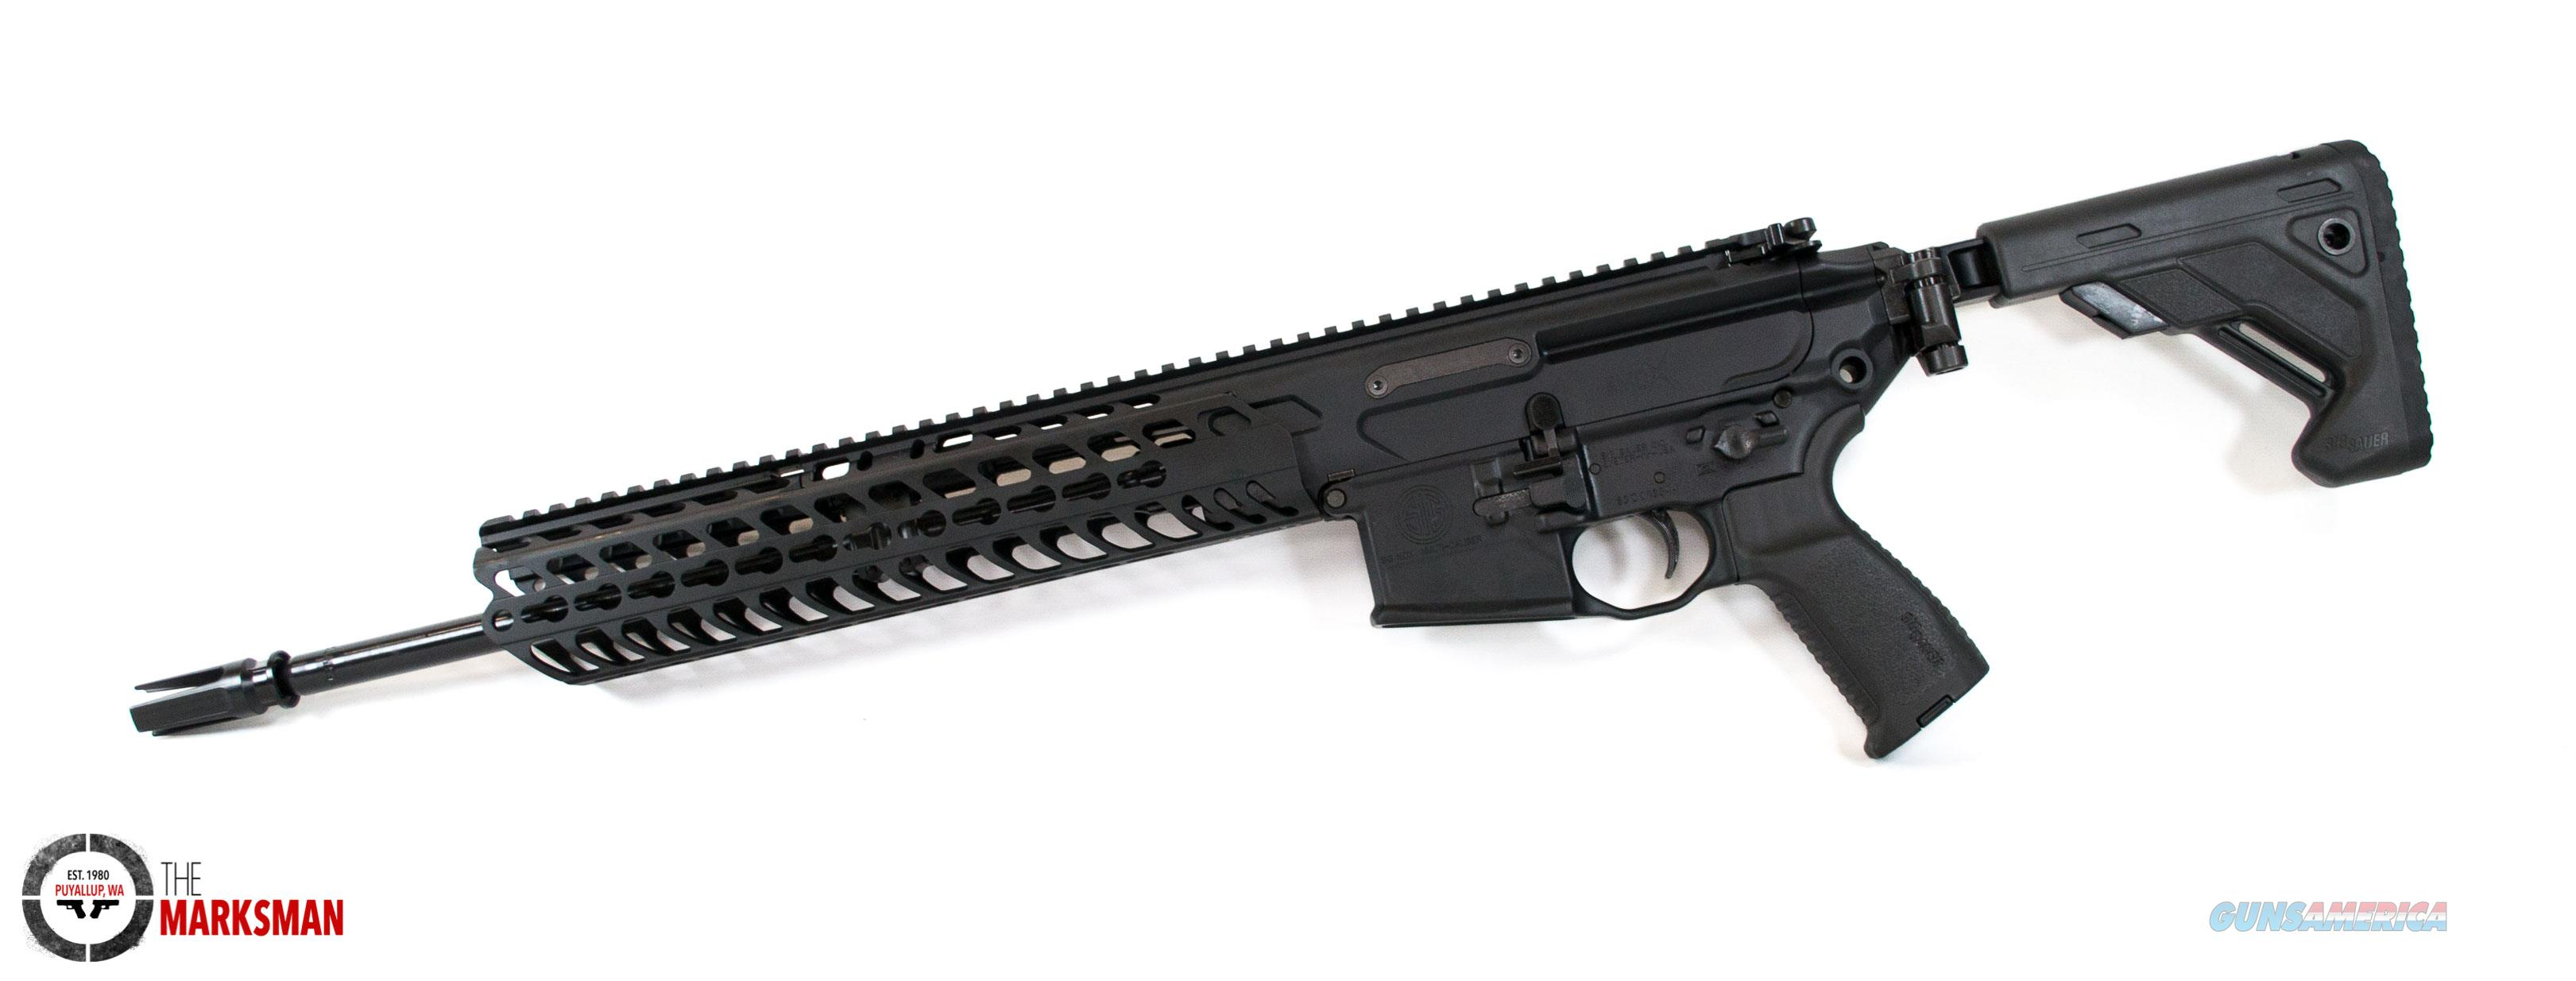 Sig Sauer MCX Patrol, 5.56mm NATO NEW Free Shipping and a ROMEO3 Red Dot Sight  Guns > Rifles > Sig - Sauer/Sigarms Rifles